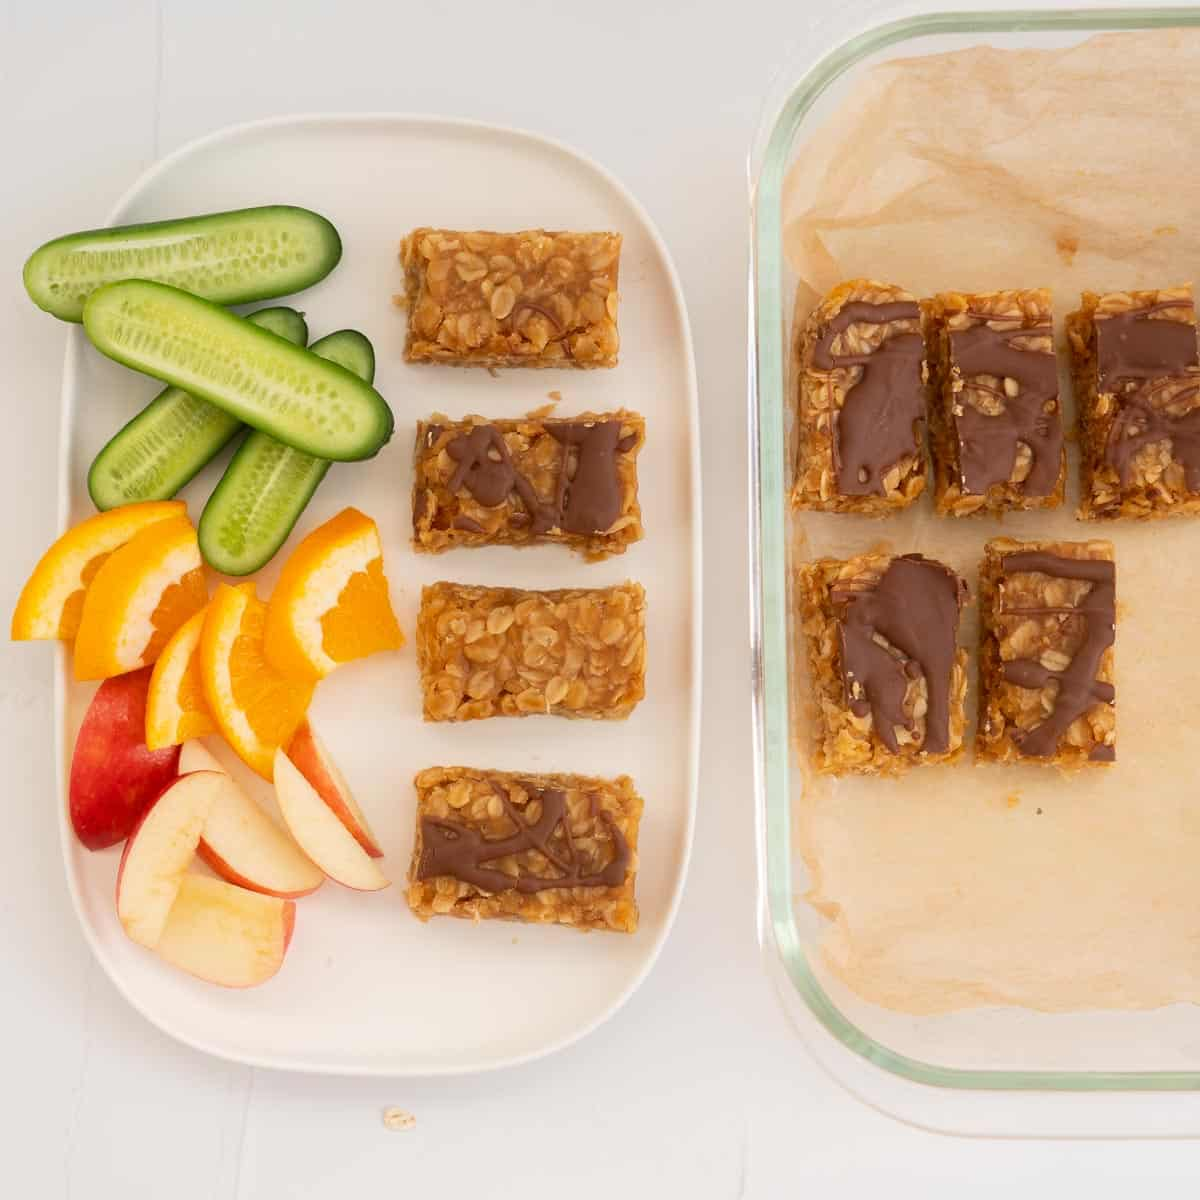 Peanut butter oat bars and fresh fruit and veggies on a white platter next to a container of bars ready to be refrigerated.